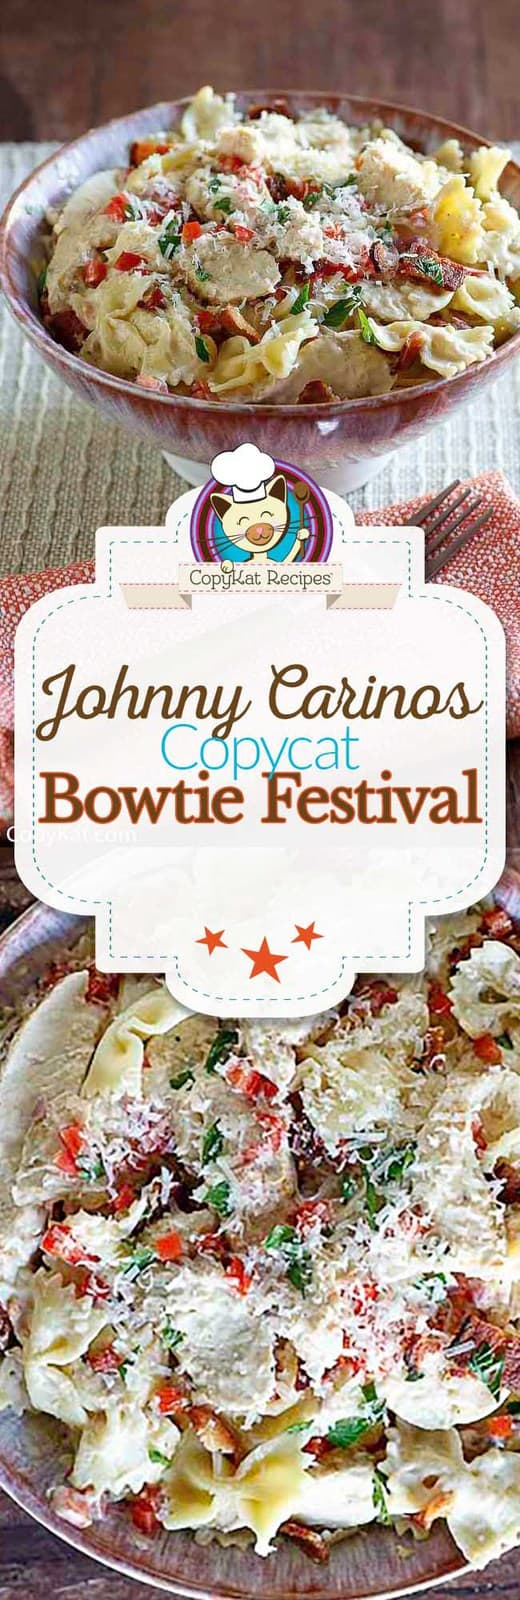 You can recreate Johnny Carinos Bowtie Festival at home.   Fresh tomatoes, crisp bacon, and grilled chicken make for one amazing pasta dish that's perfect for dinner.  #copycat #copycatrecipe #pasta #pastarecipe #grilledchicken